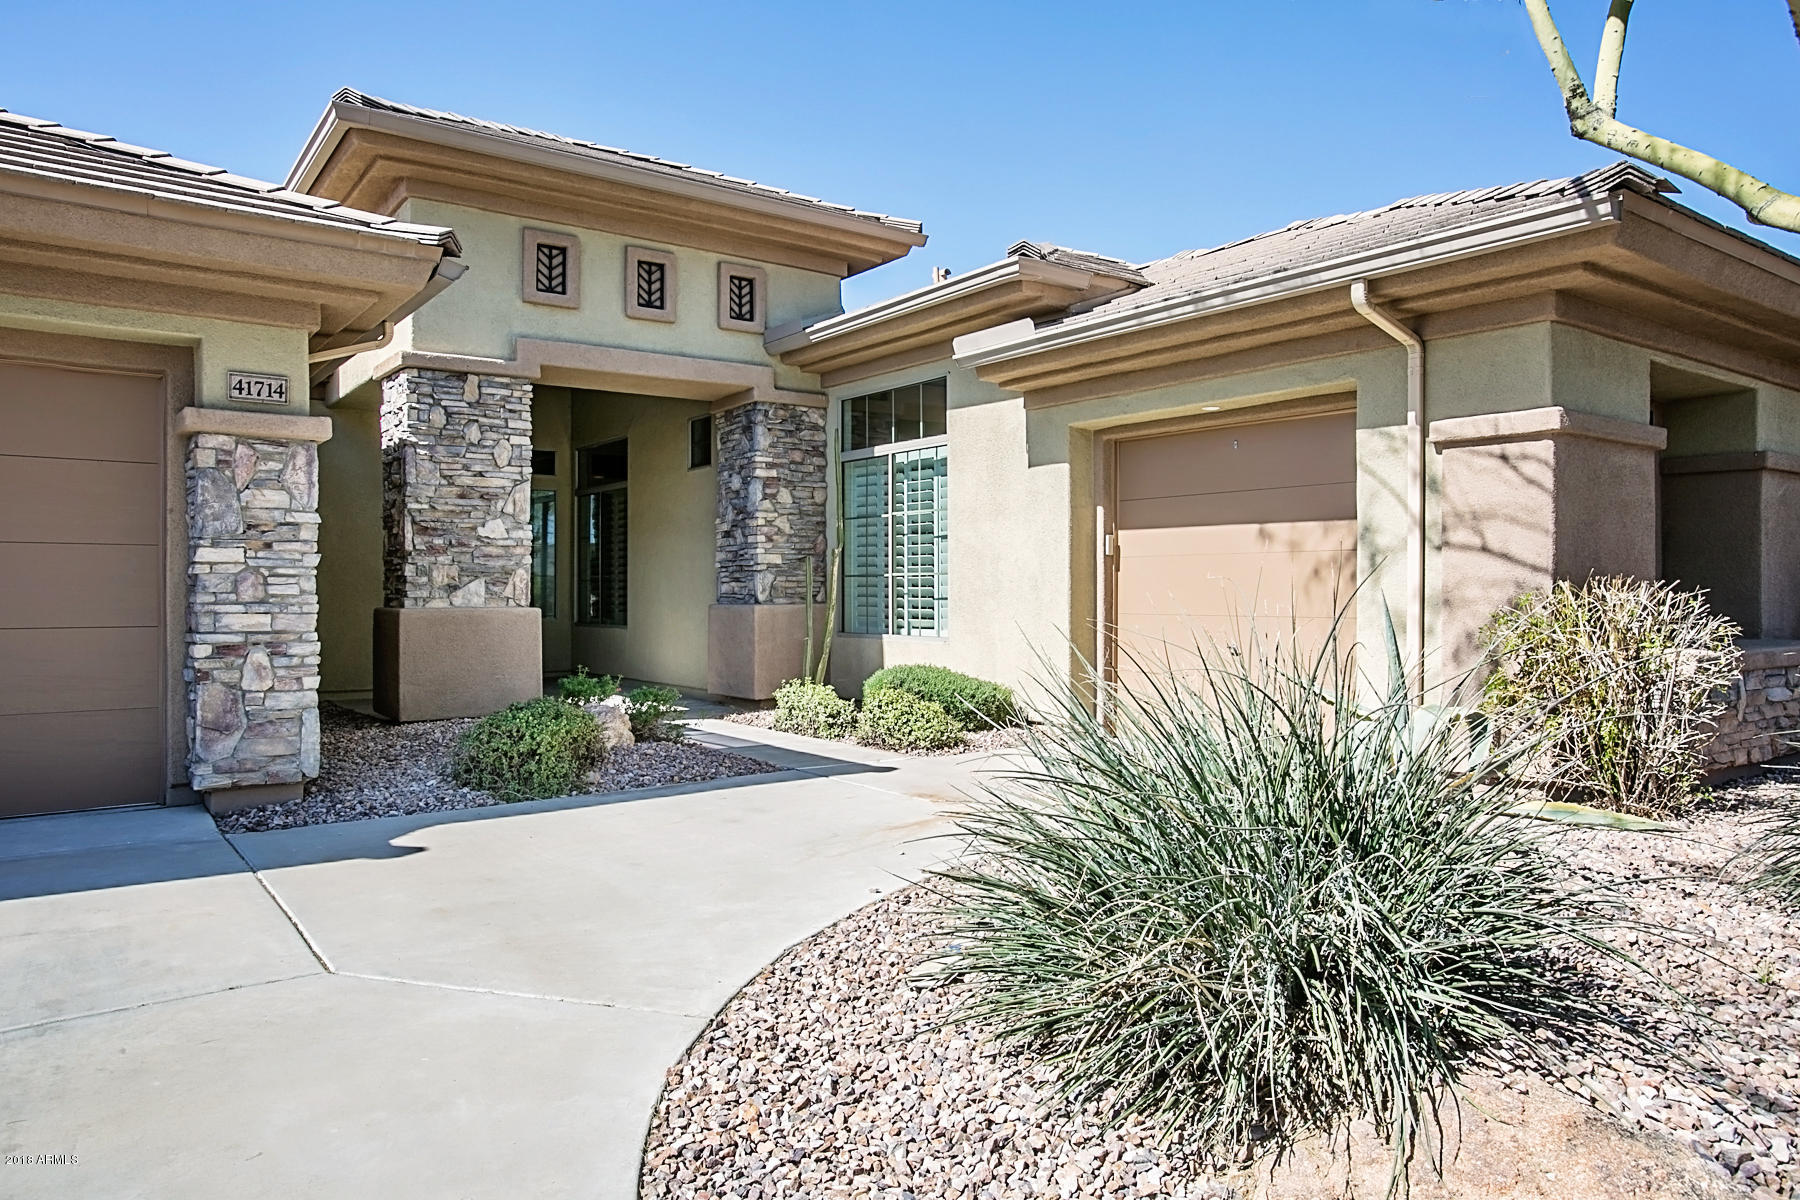 41714 N SIGNAL HILL Court, Anthem, Arizona